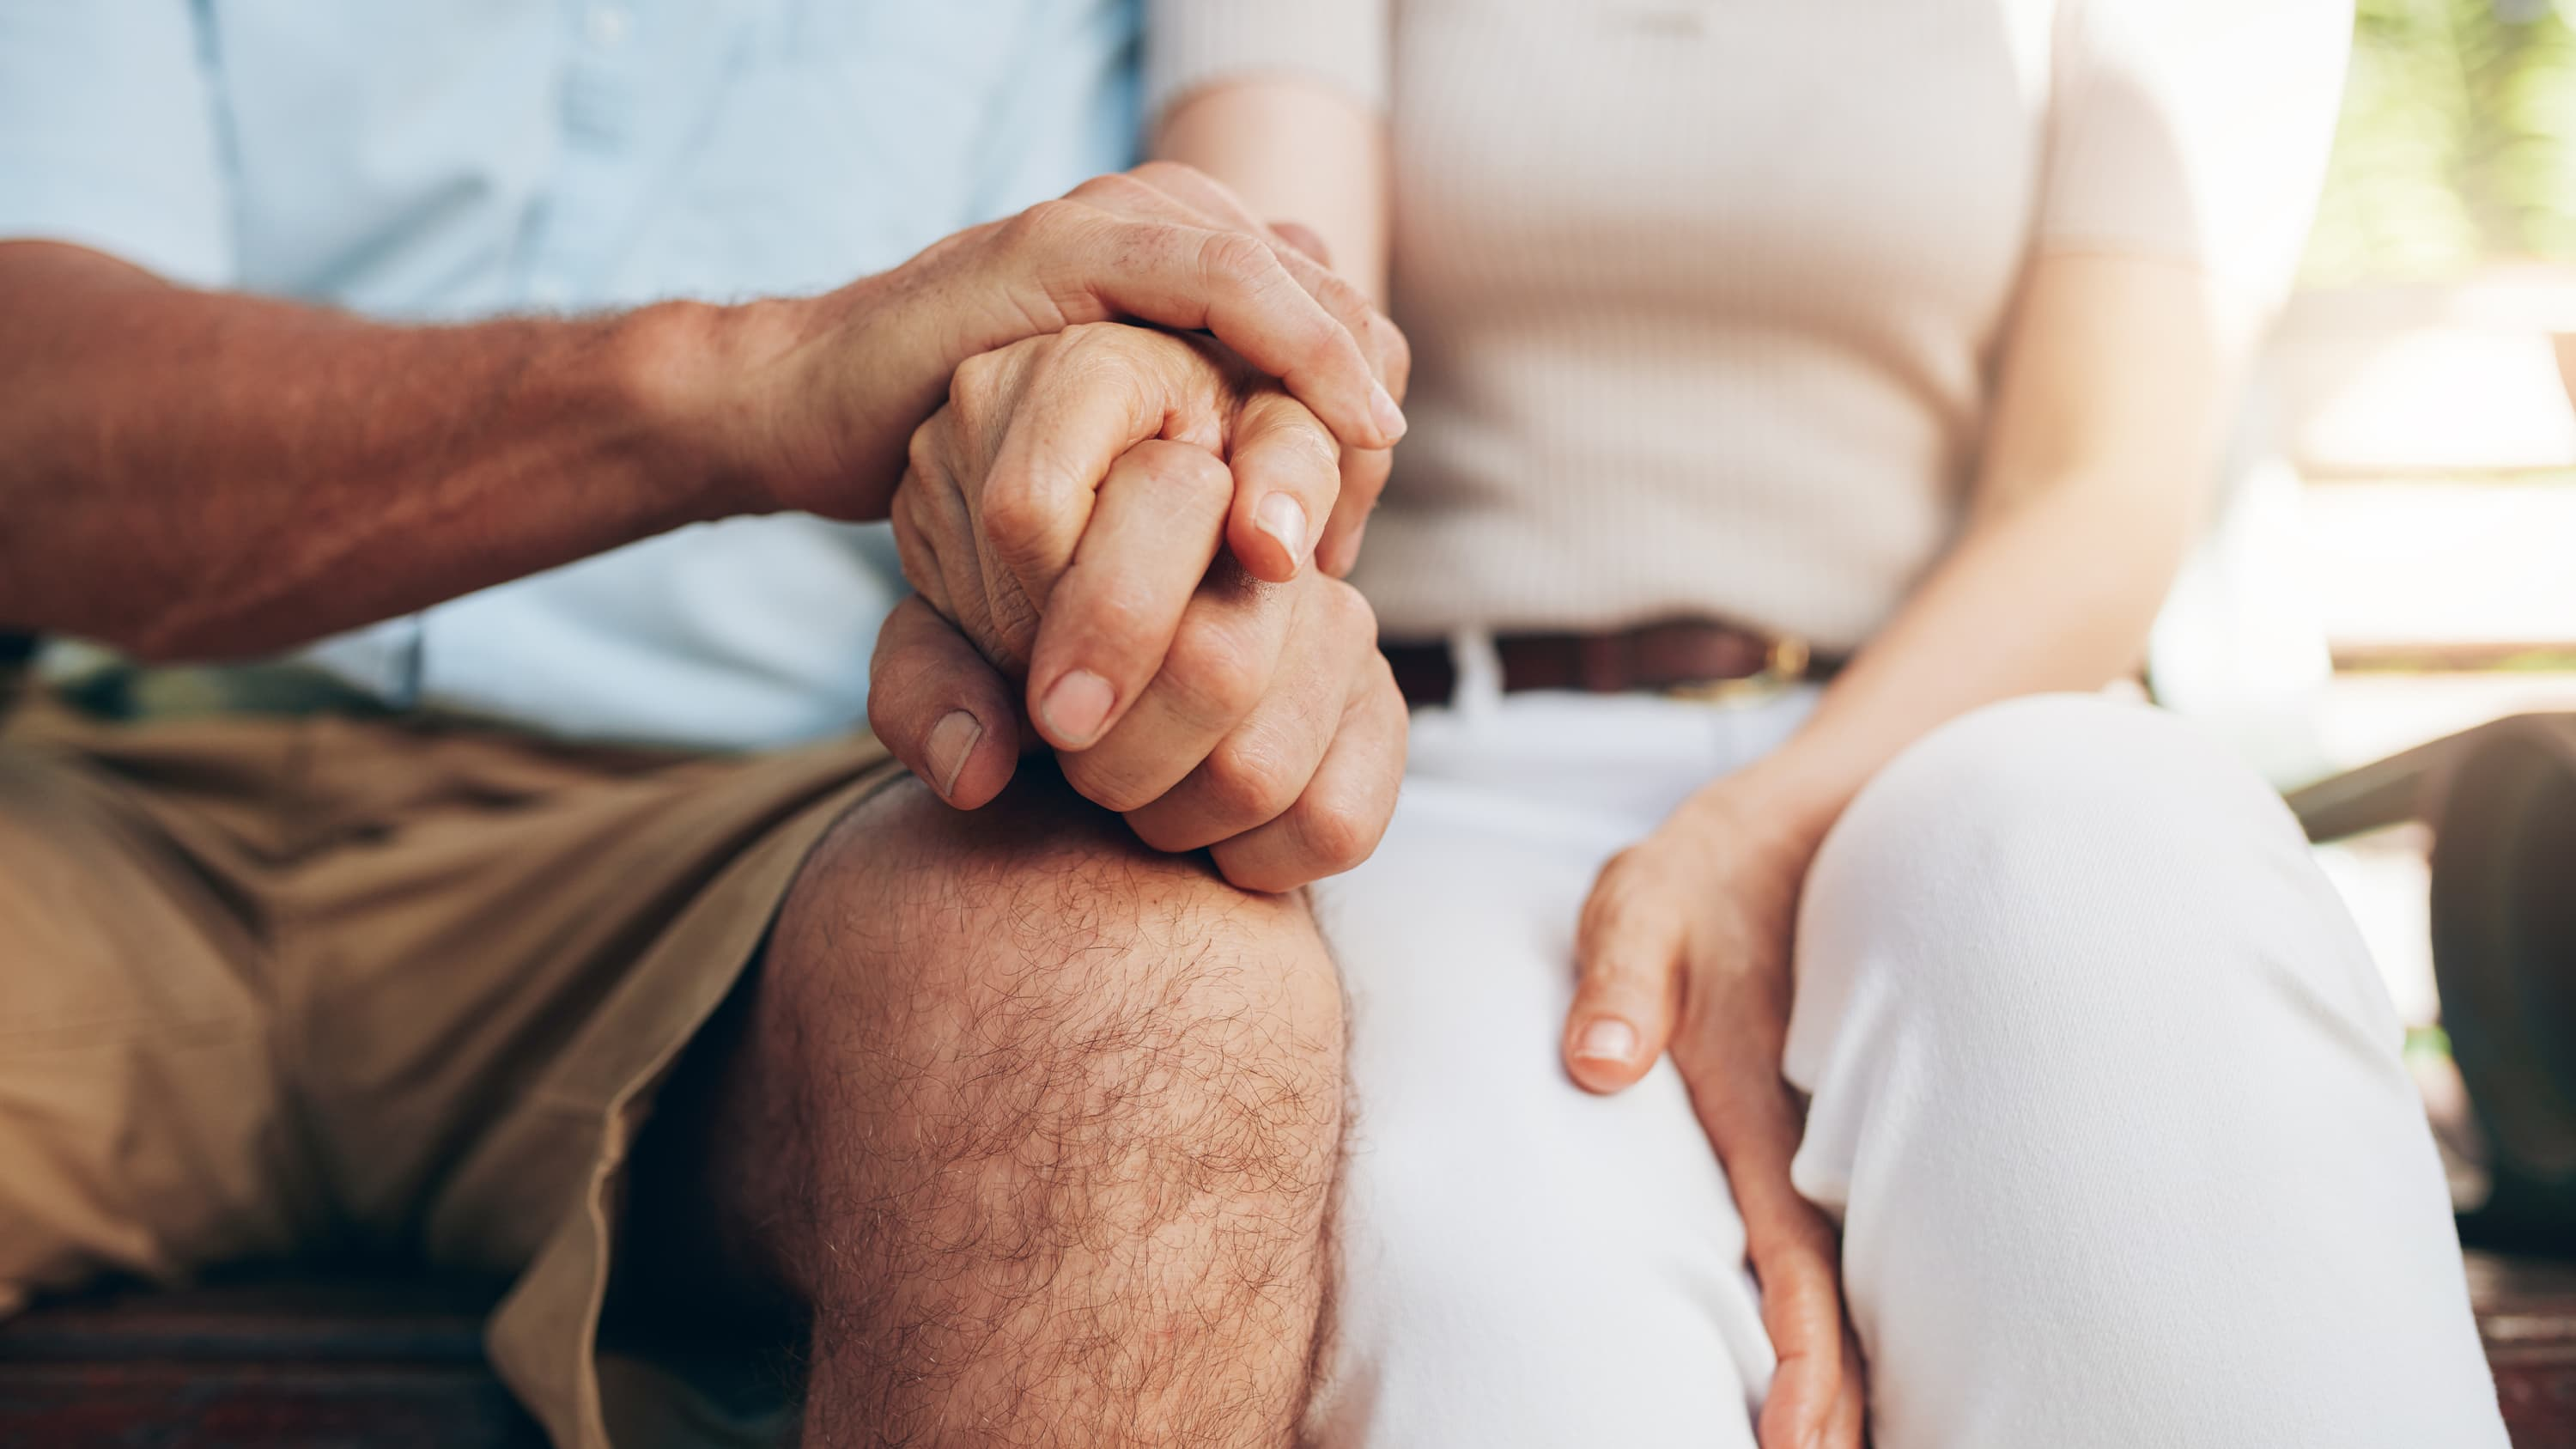 Husband holds his wife's hand after diagnosis of coronary artery disease